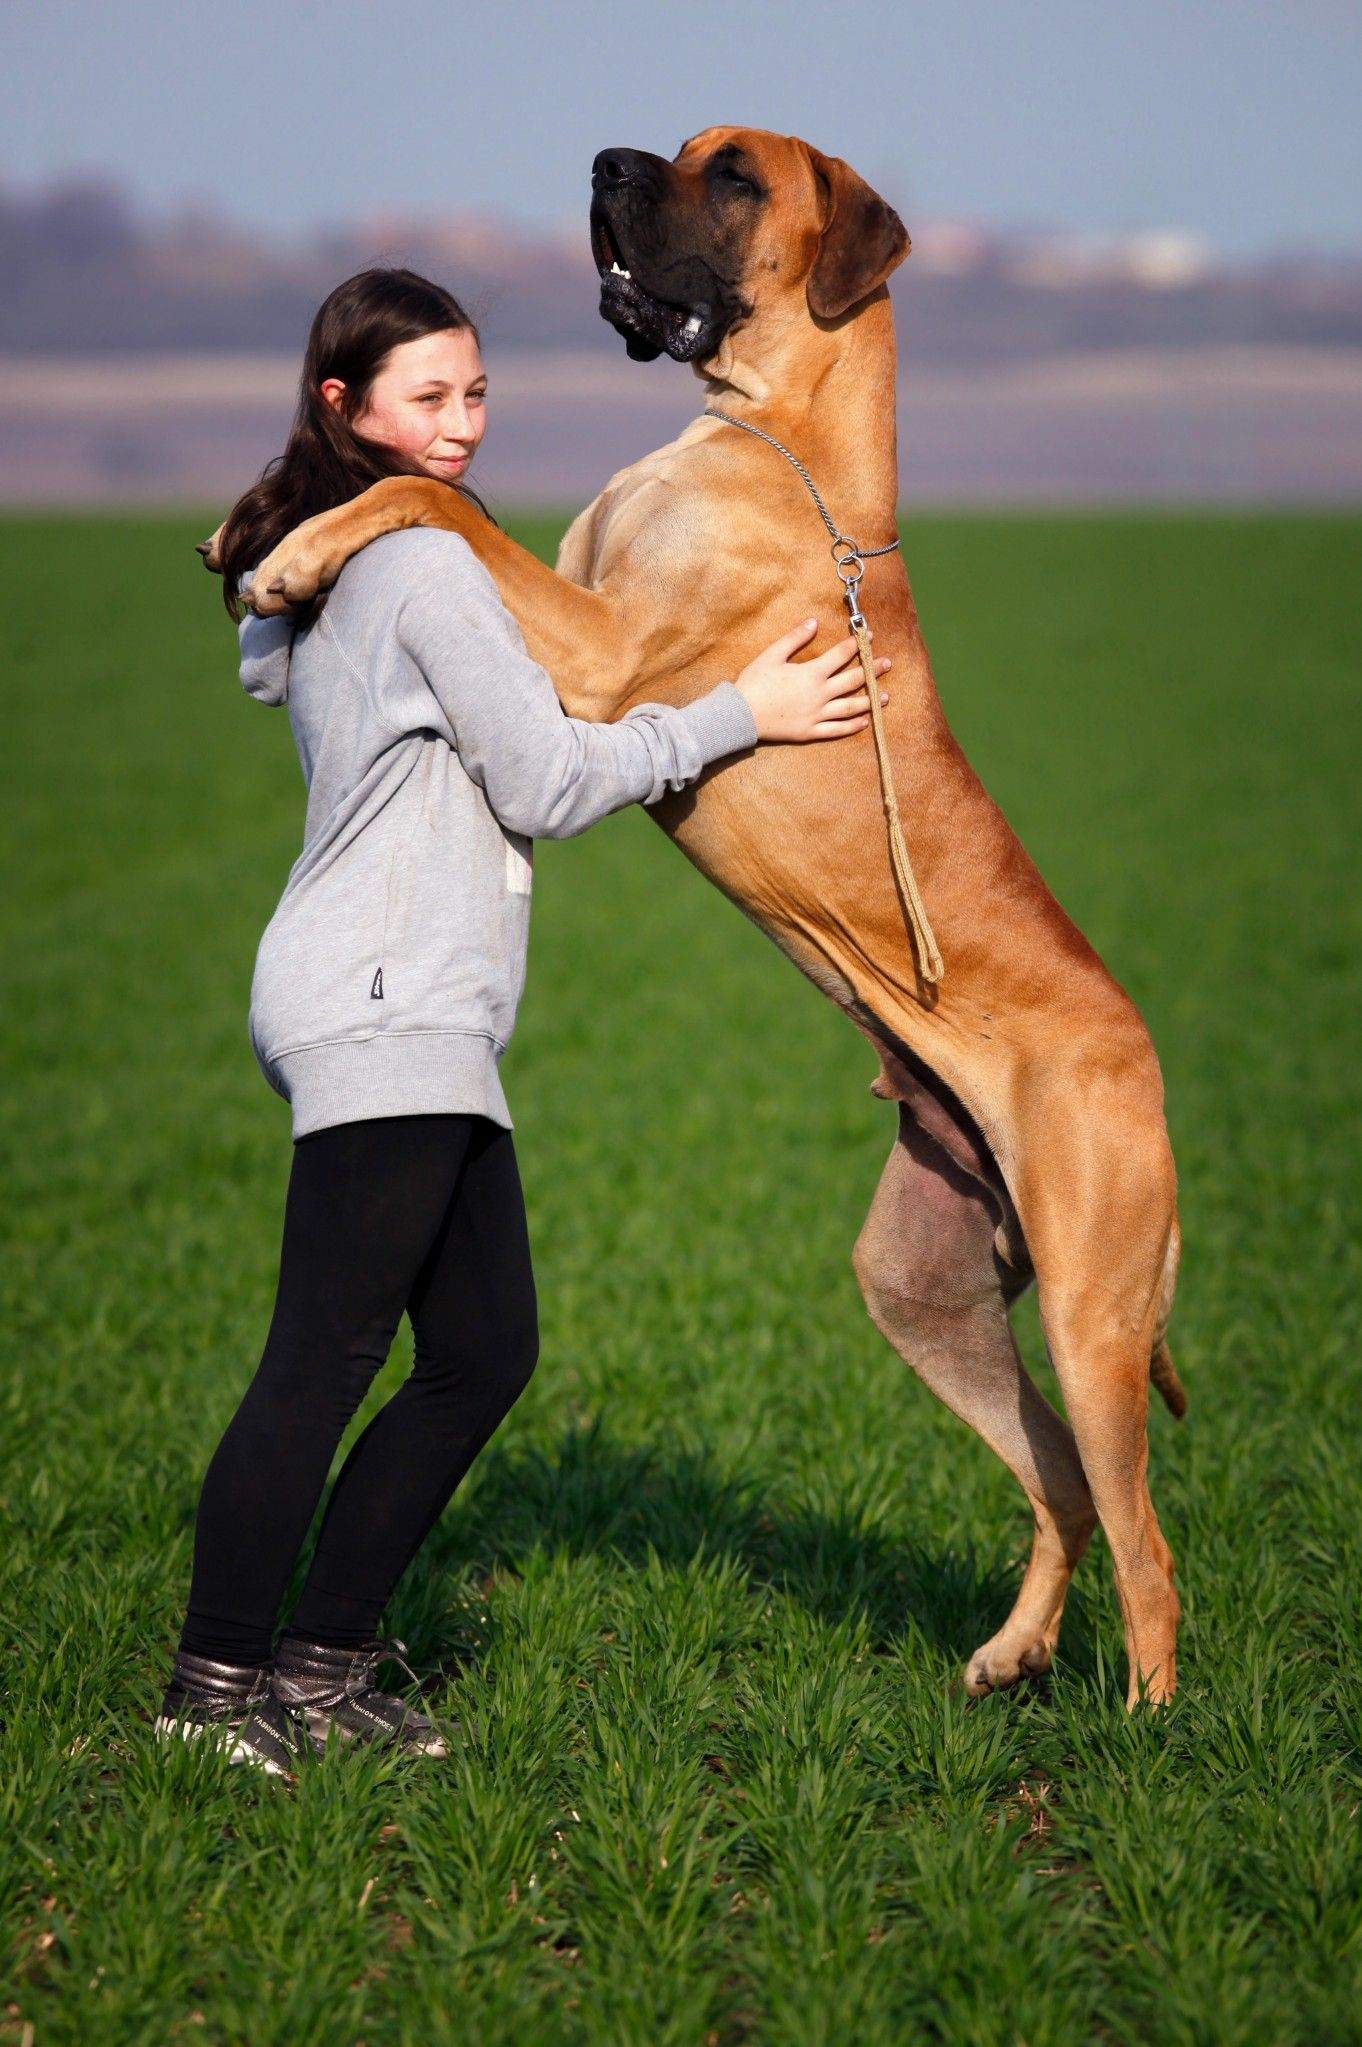 Pin By David Mcg On Dogs Dog Training Obedience Training Your